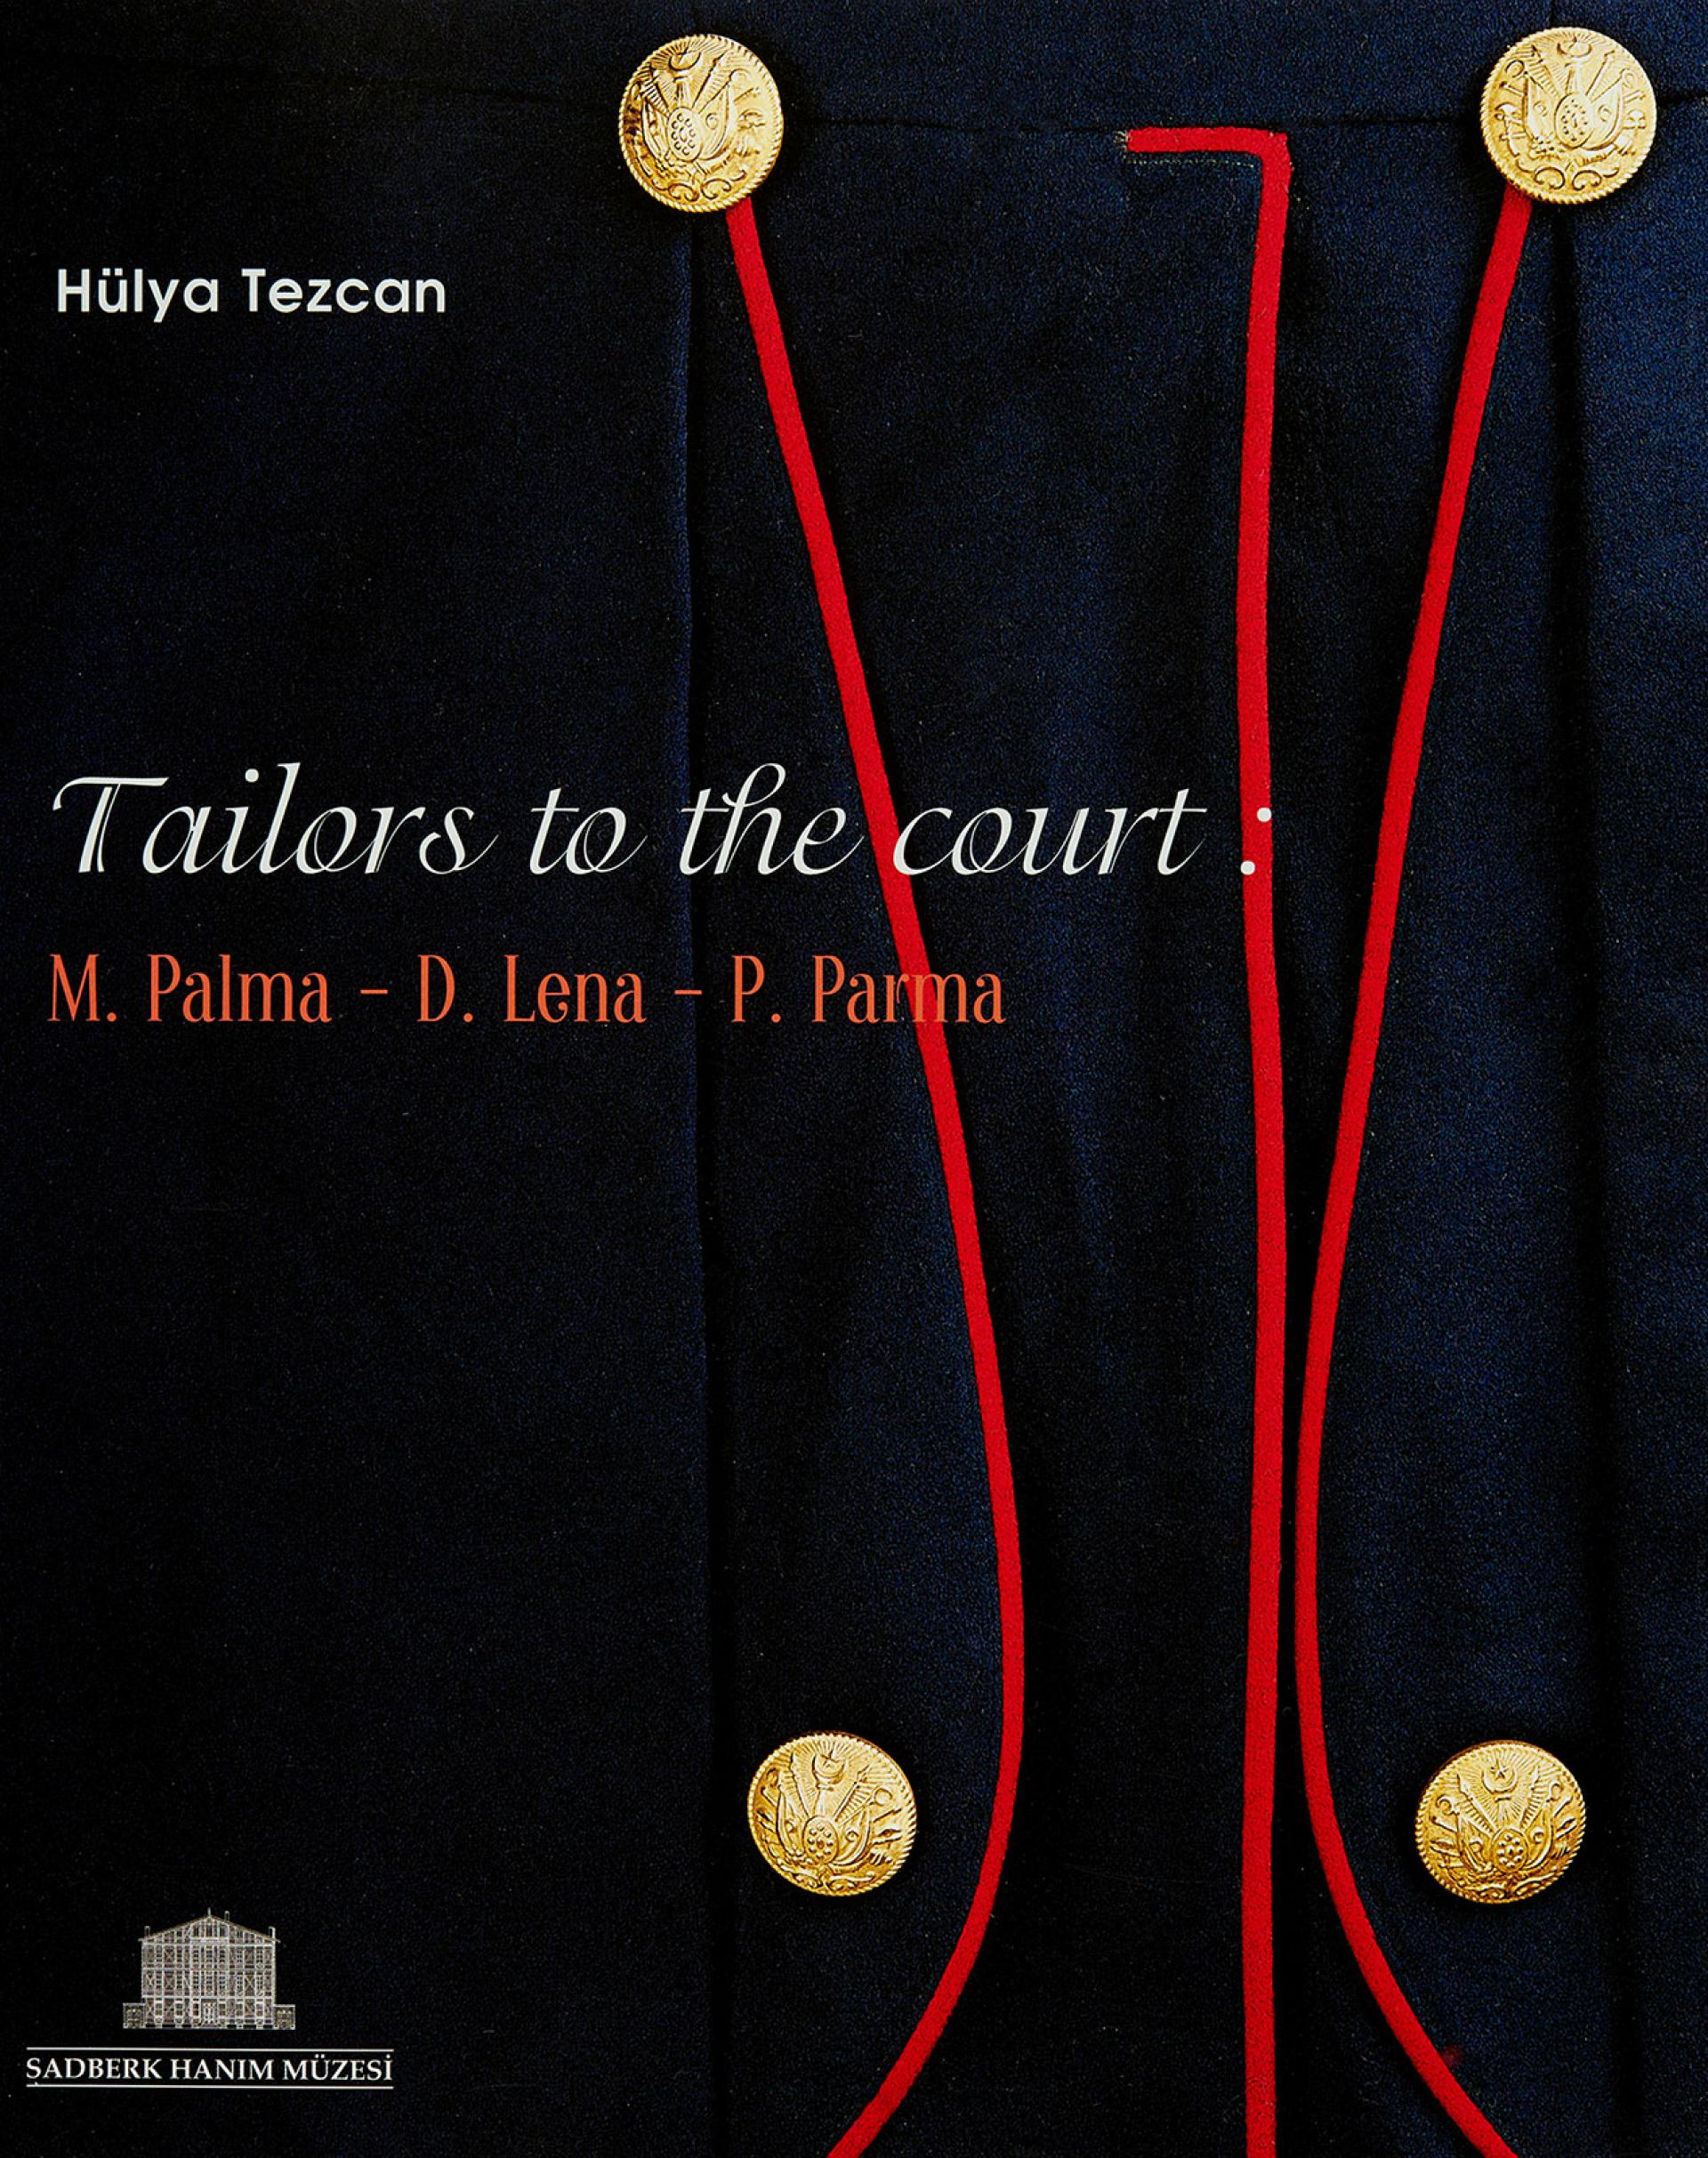 Tailors to the Court: M. Palma - D. Lena - P. Parma - BOOKS - Sadberk Hanım Museum